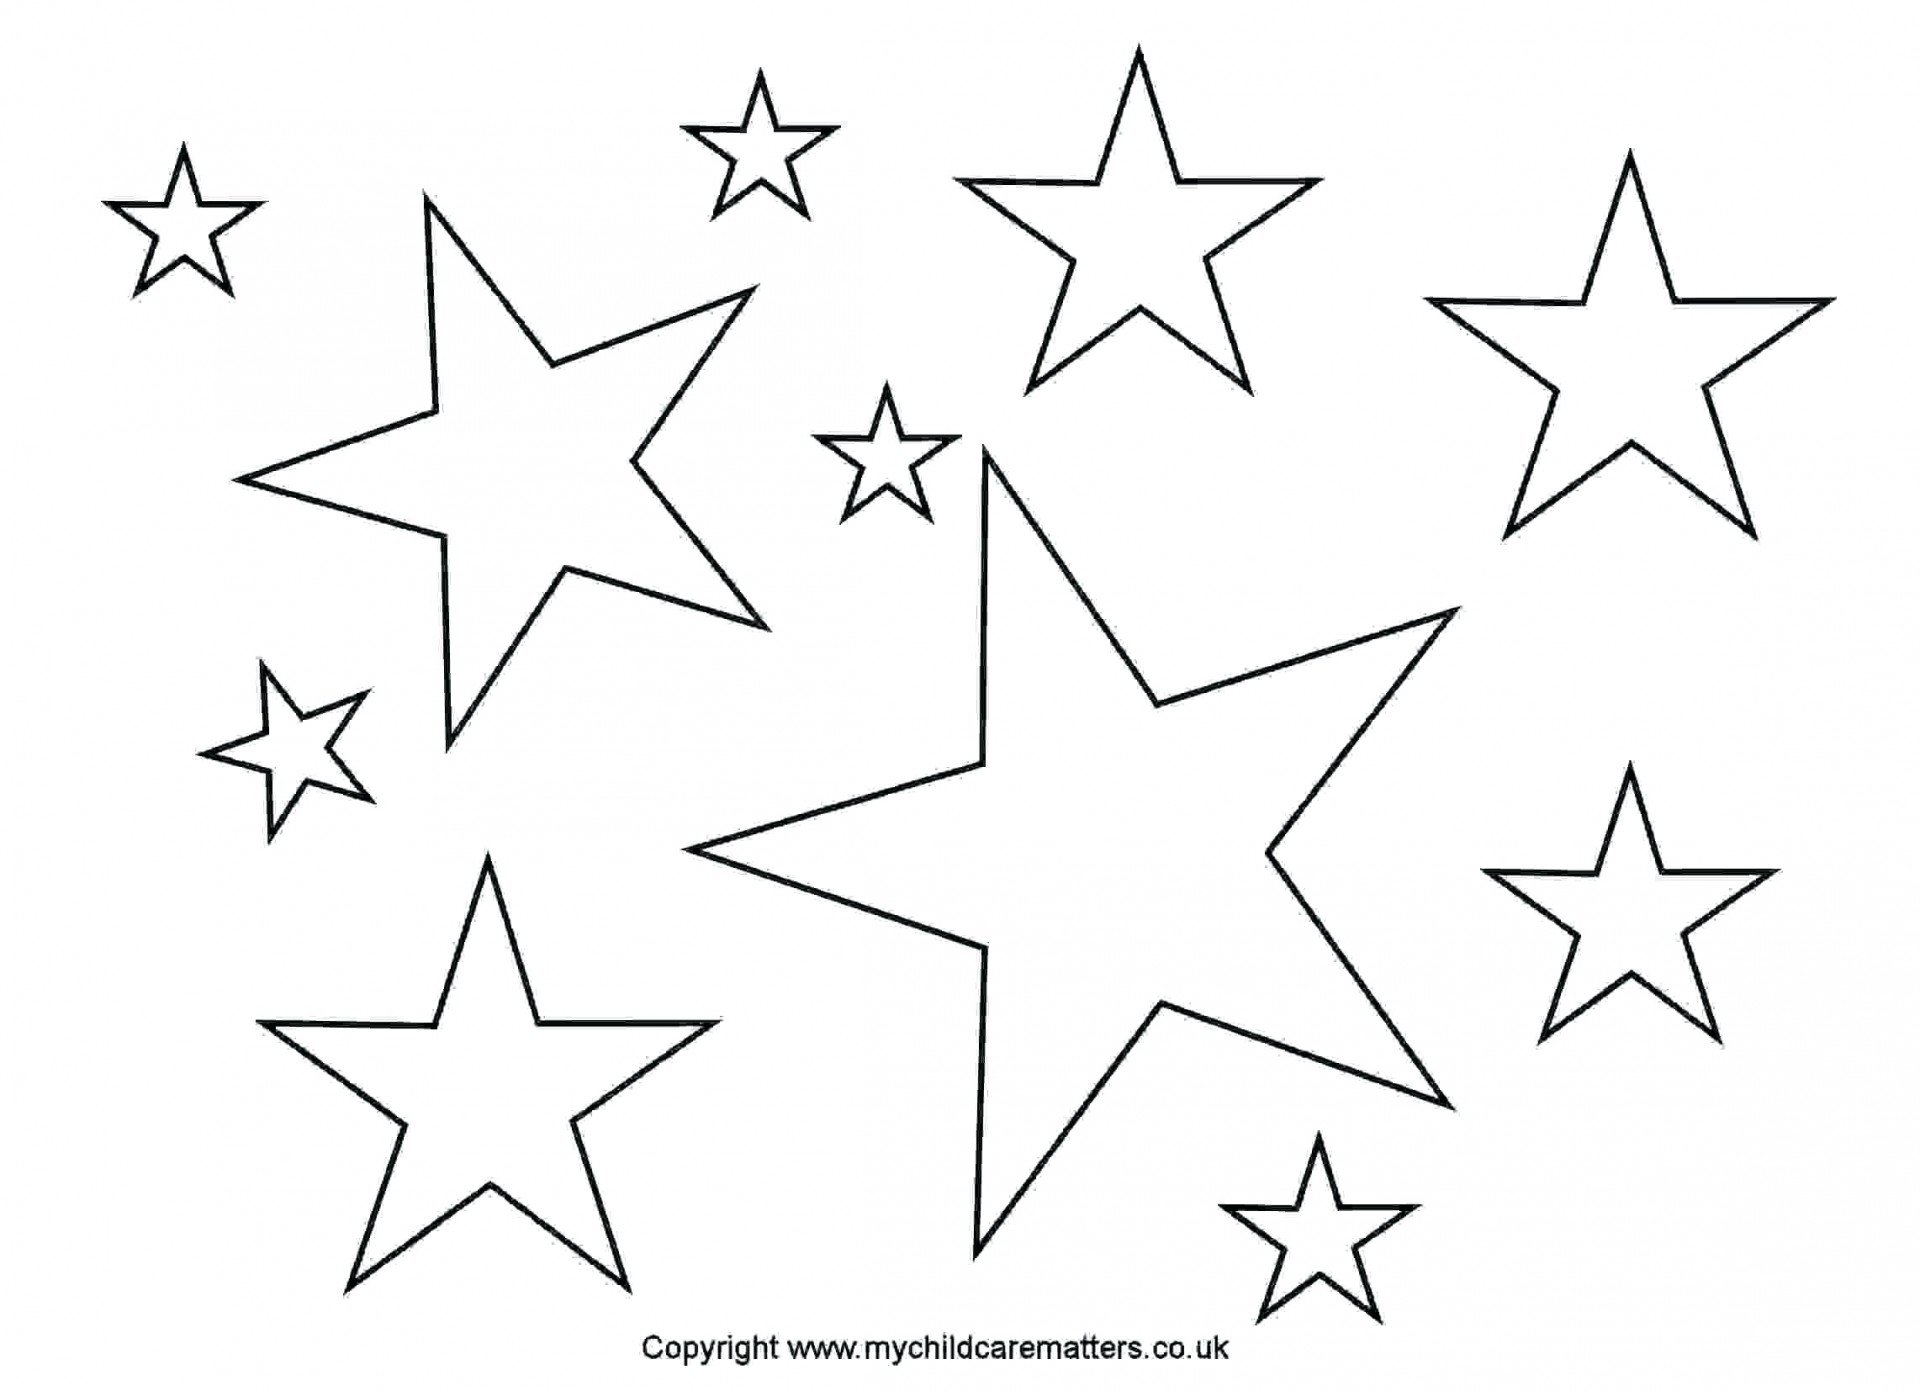 005 Stars Outlines Printables Star Outline Images Greeting Cards 1920x1391